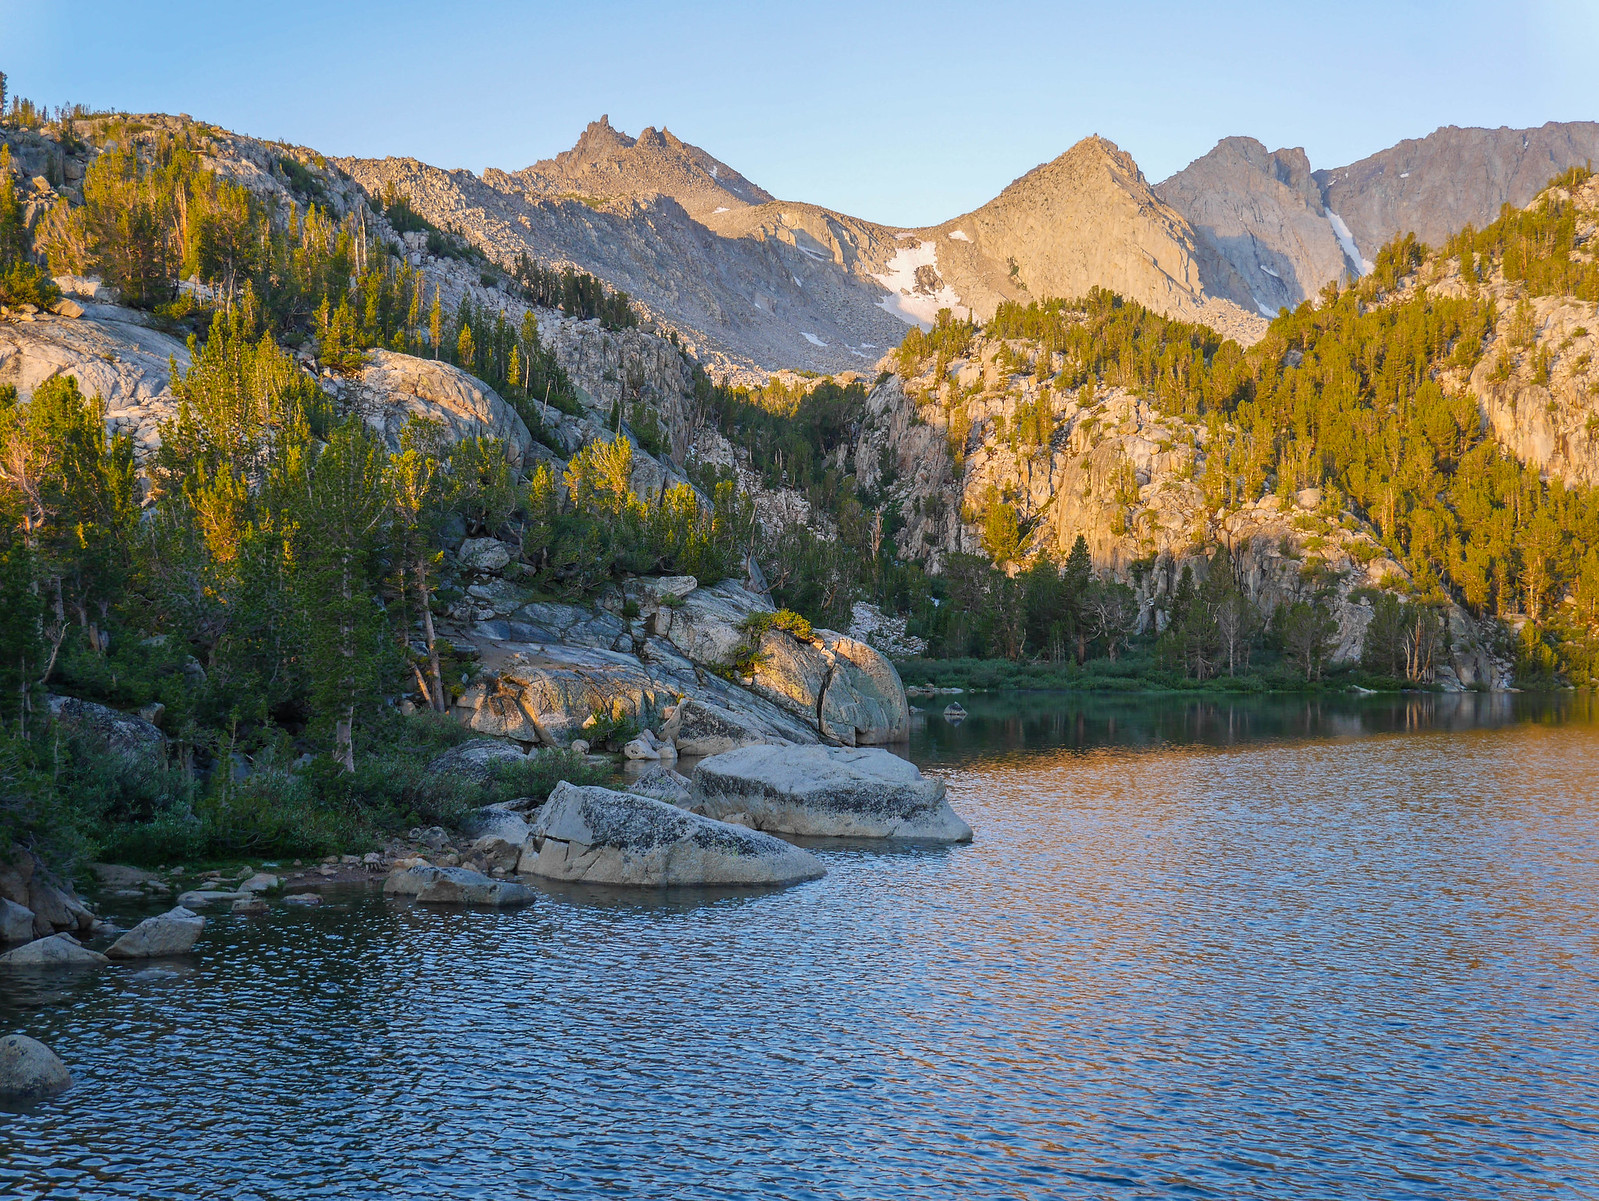 Sunrise at Lower Lamarck Lake, also a view to the high plateau that leads to Lamarck Col